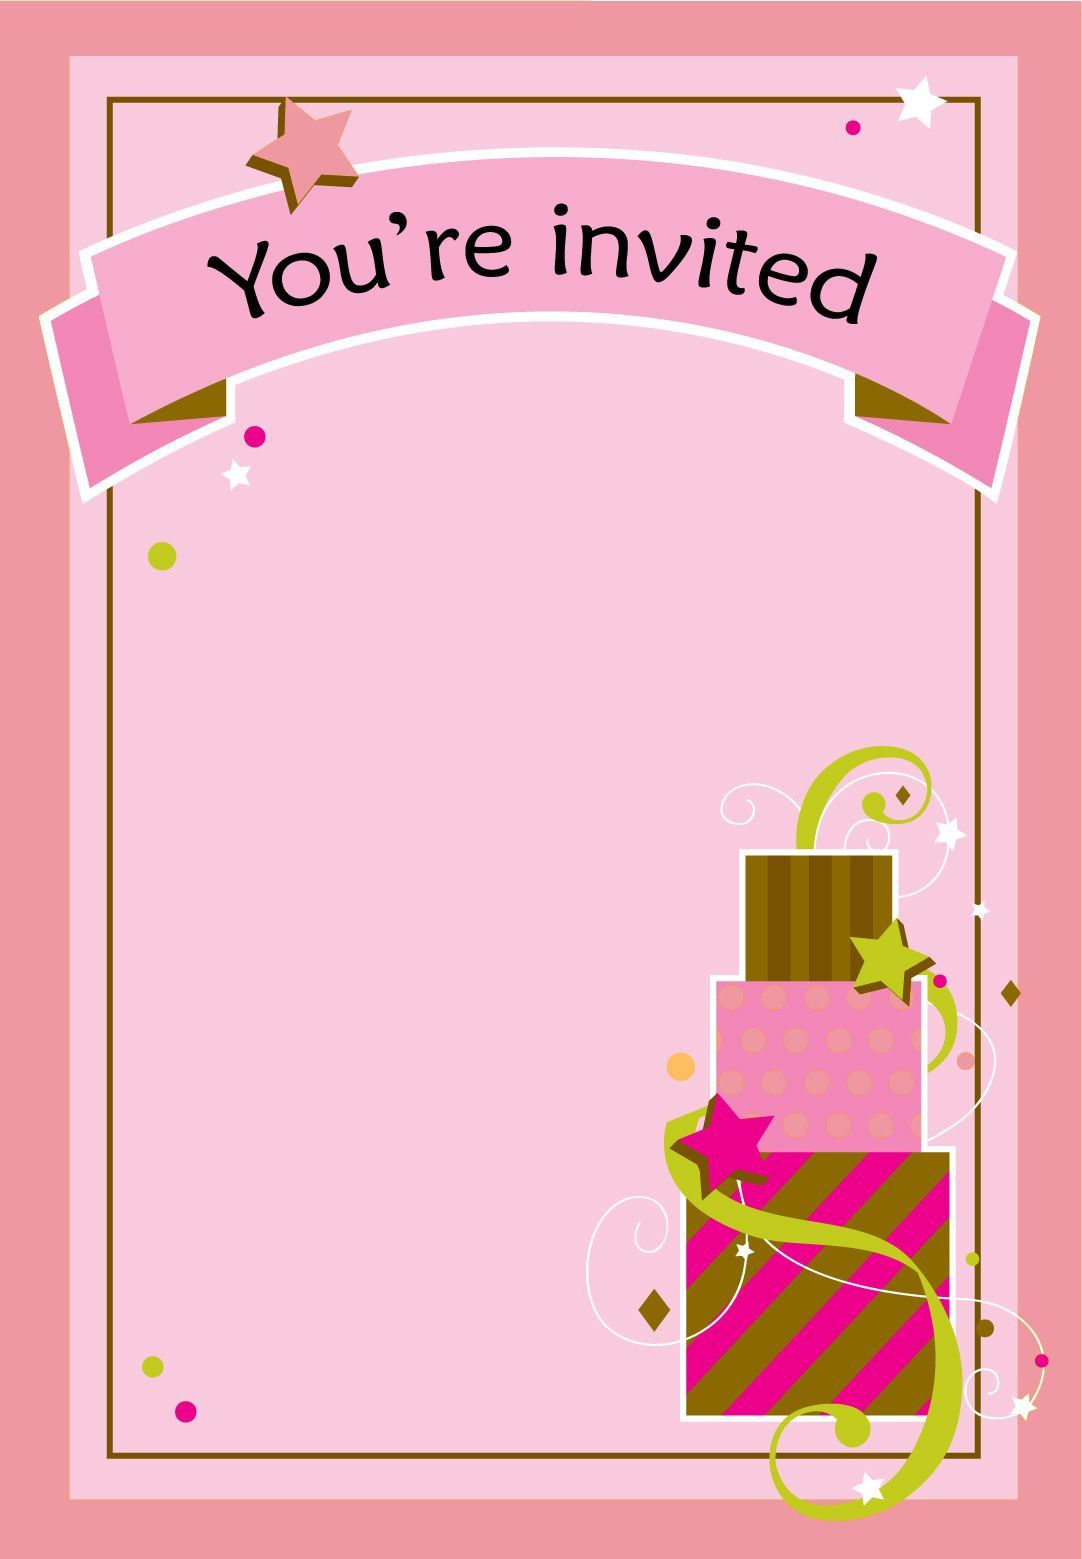 003 Awesome Free Birthday Card Invitation Template Printable Sample Full